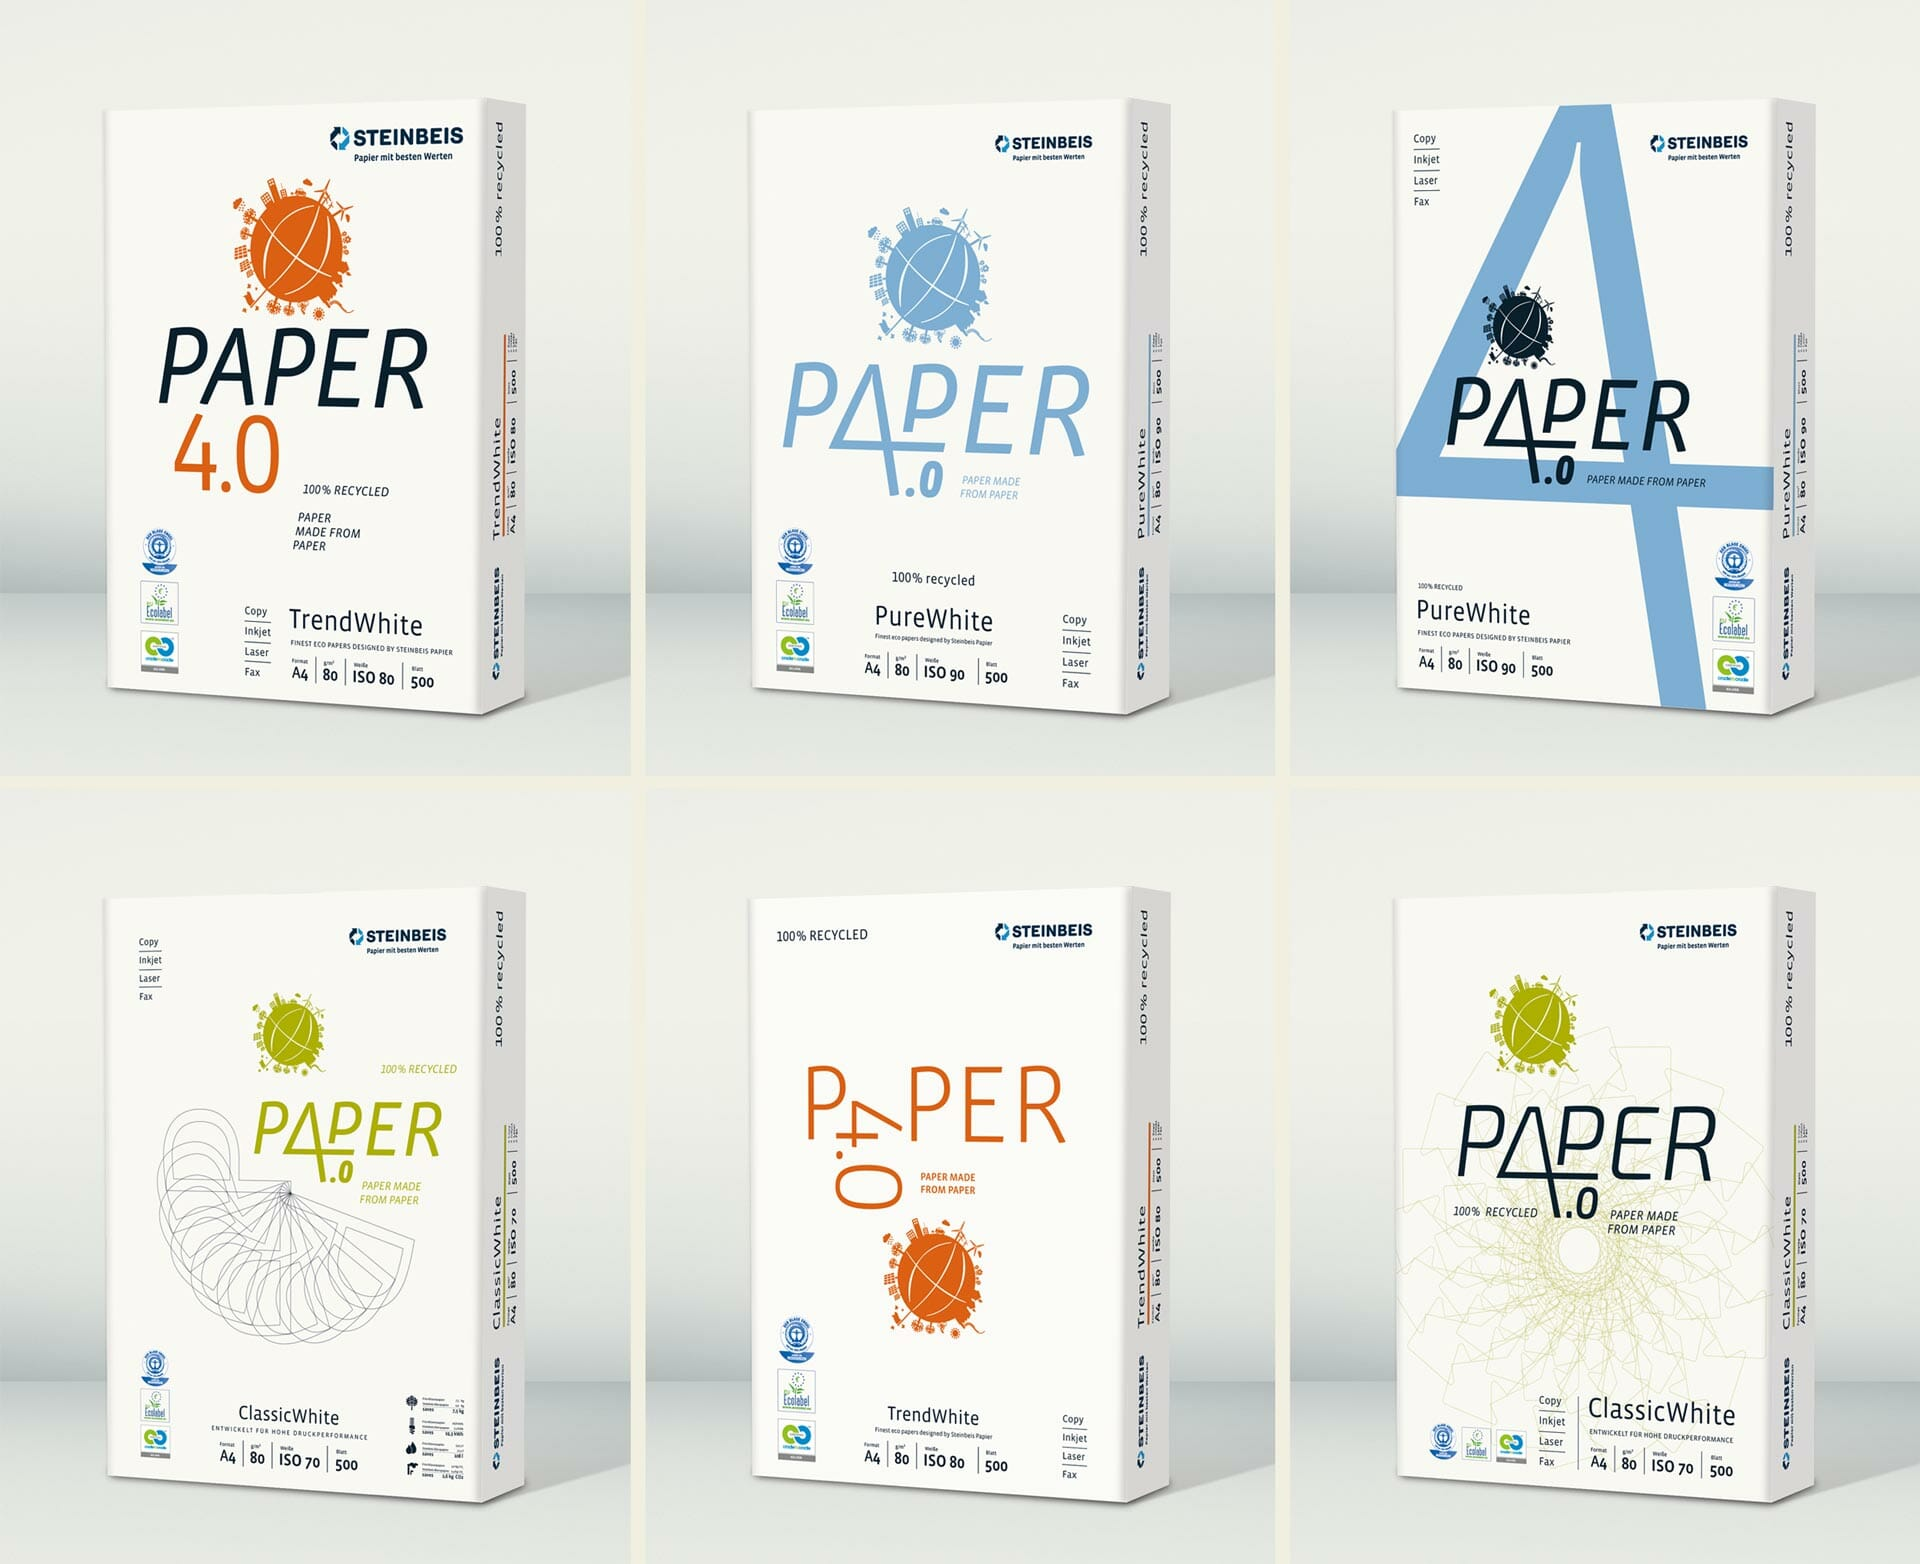 Steinbeis Papier Packaging Redesign 2015 rejected